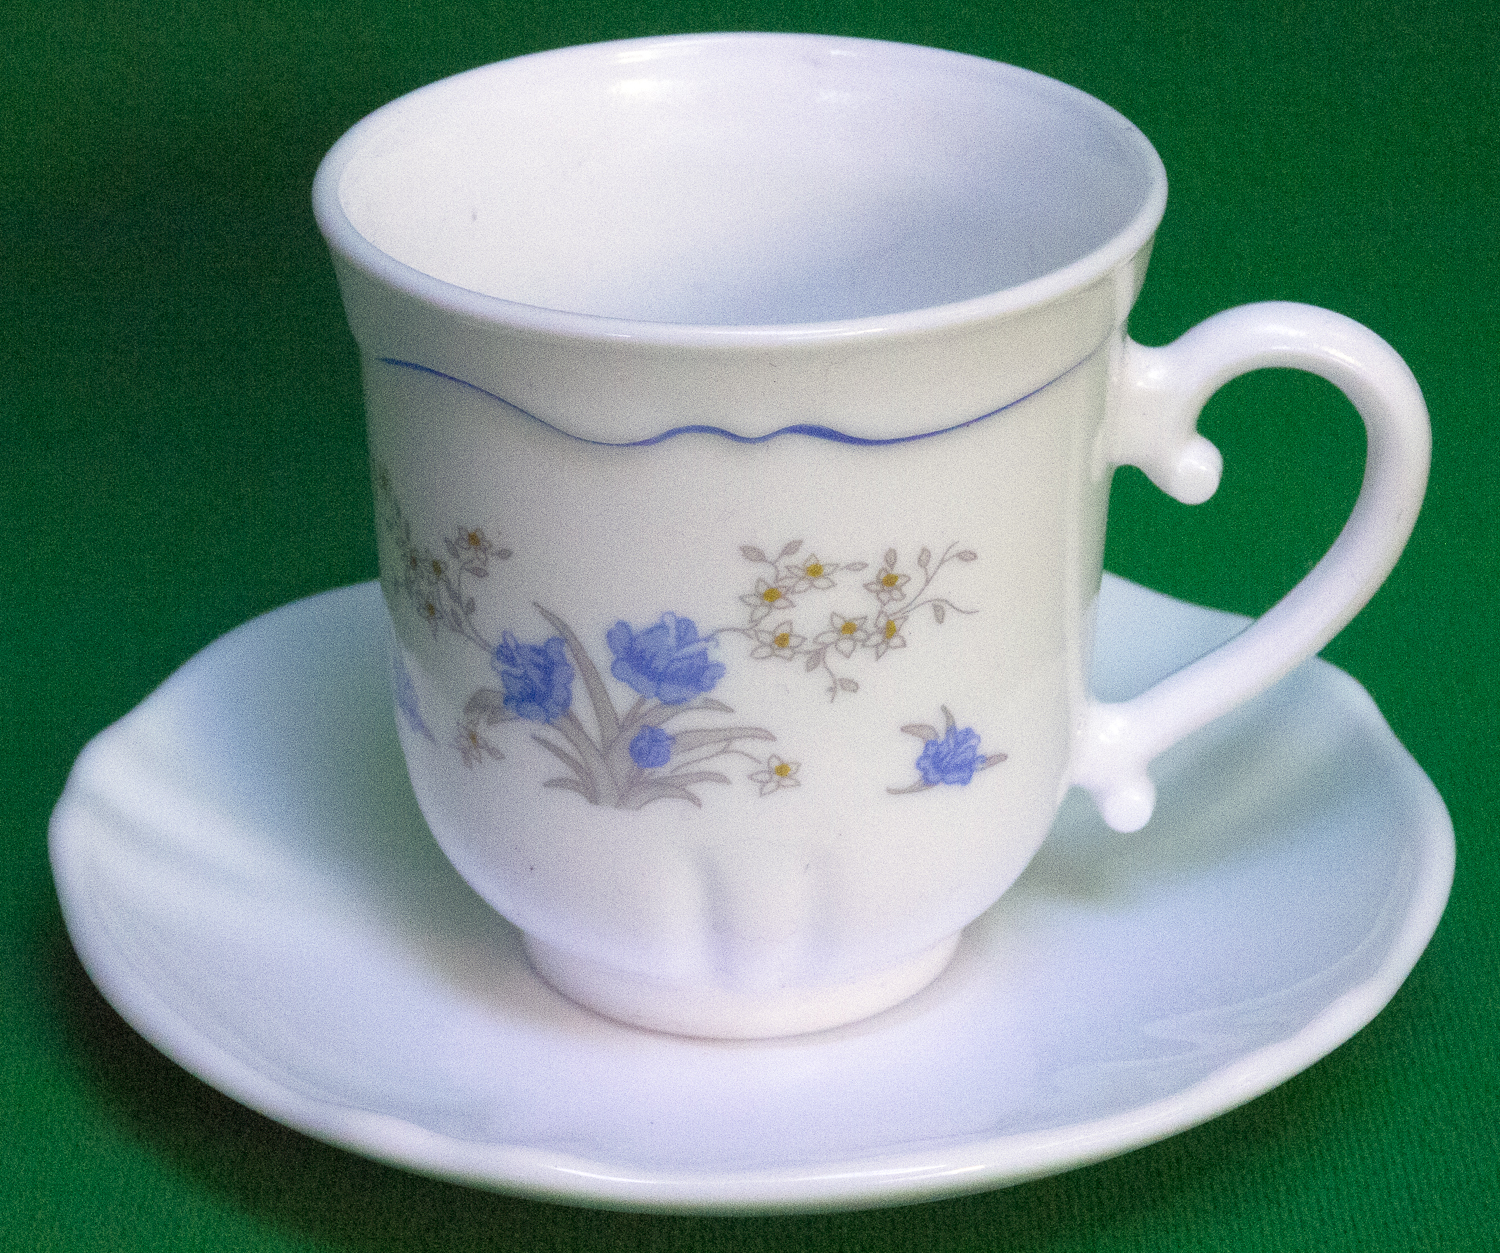 Set of 5 Arcopal (France) Cup & Saucer Sets and 37 similar items